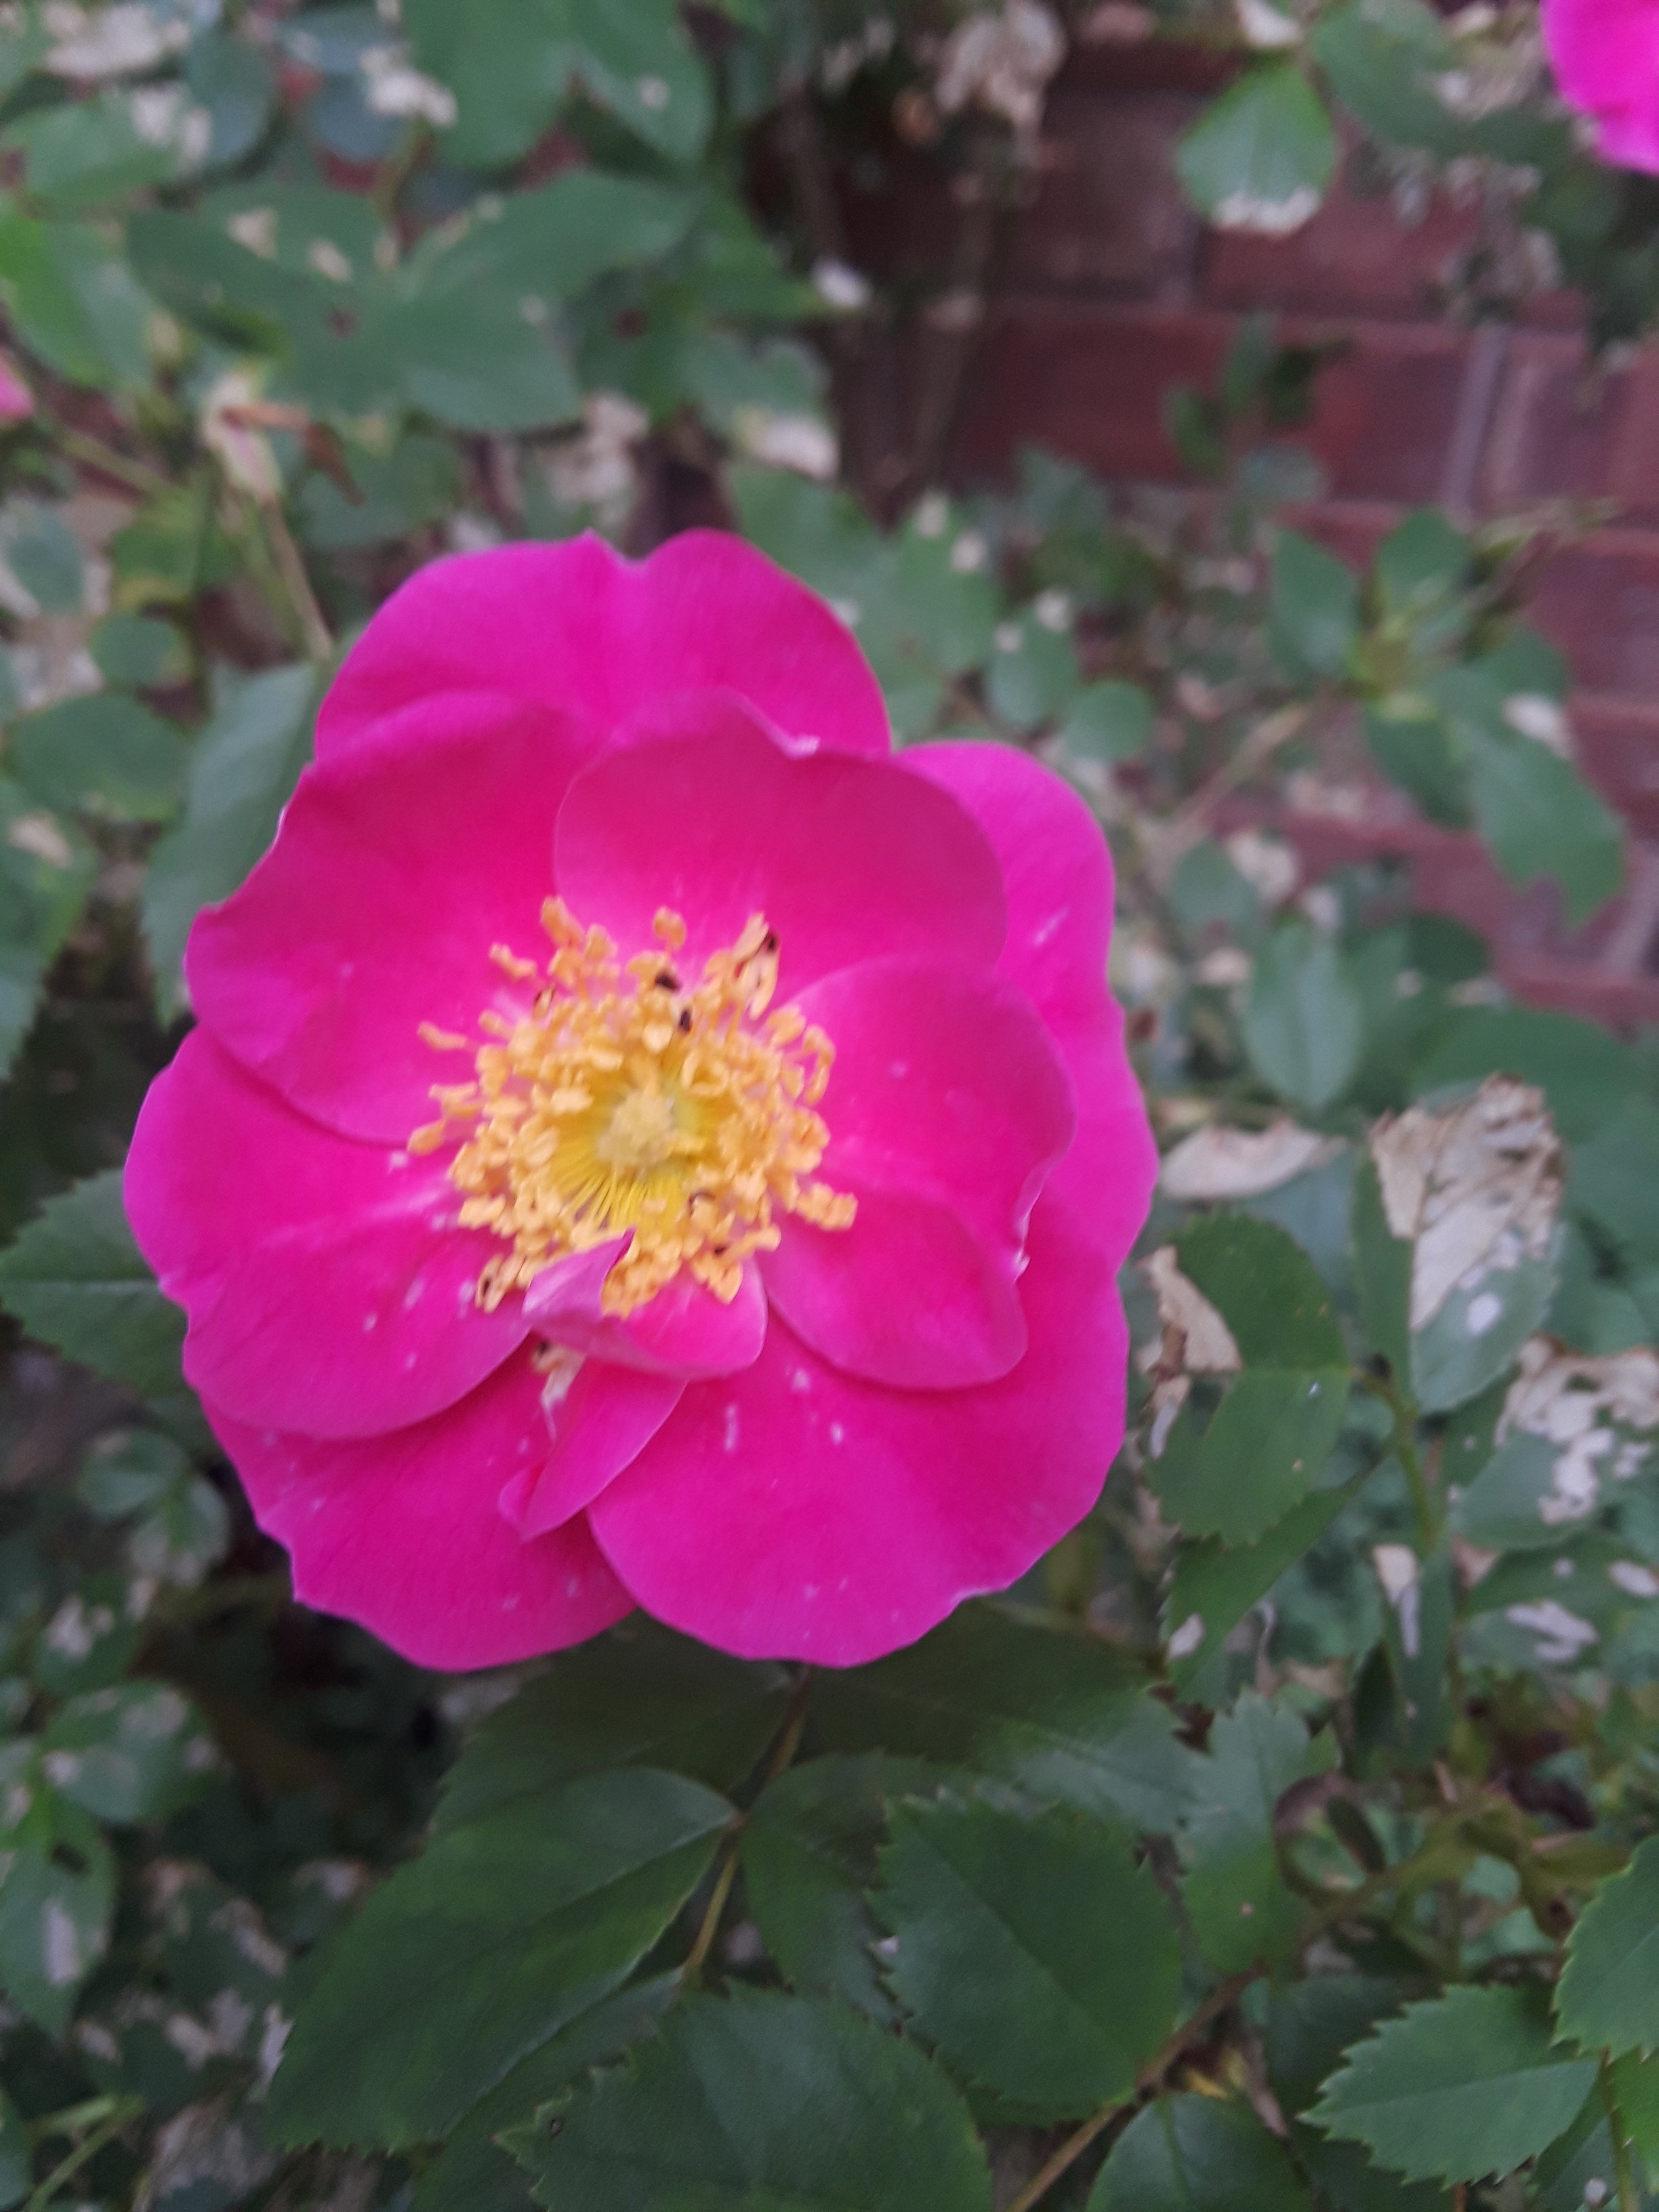 William Baffin climbing rose is a bright pink with yellow stamen